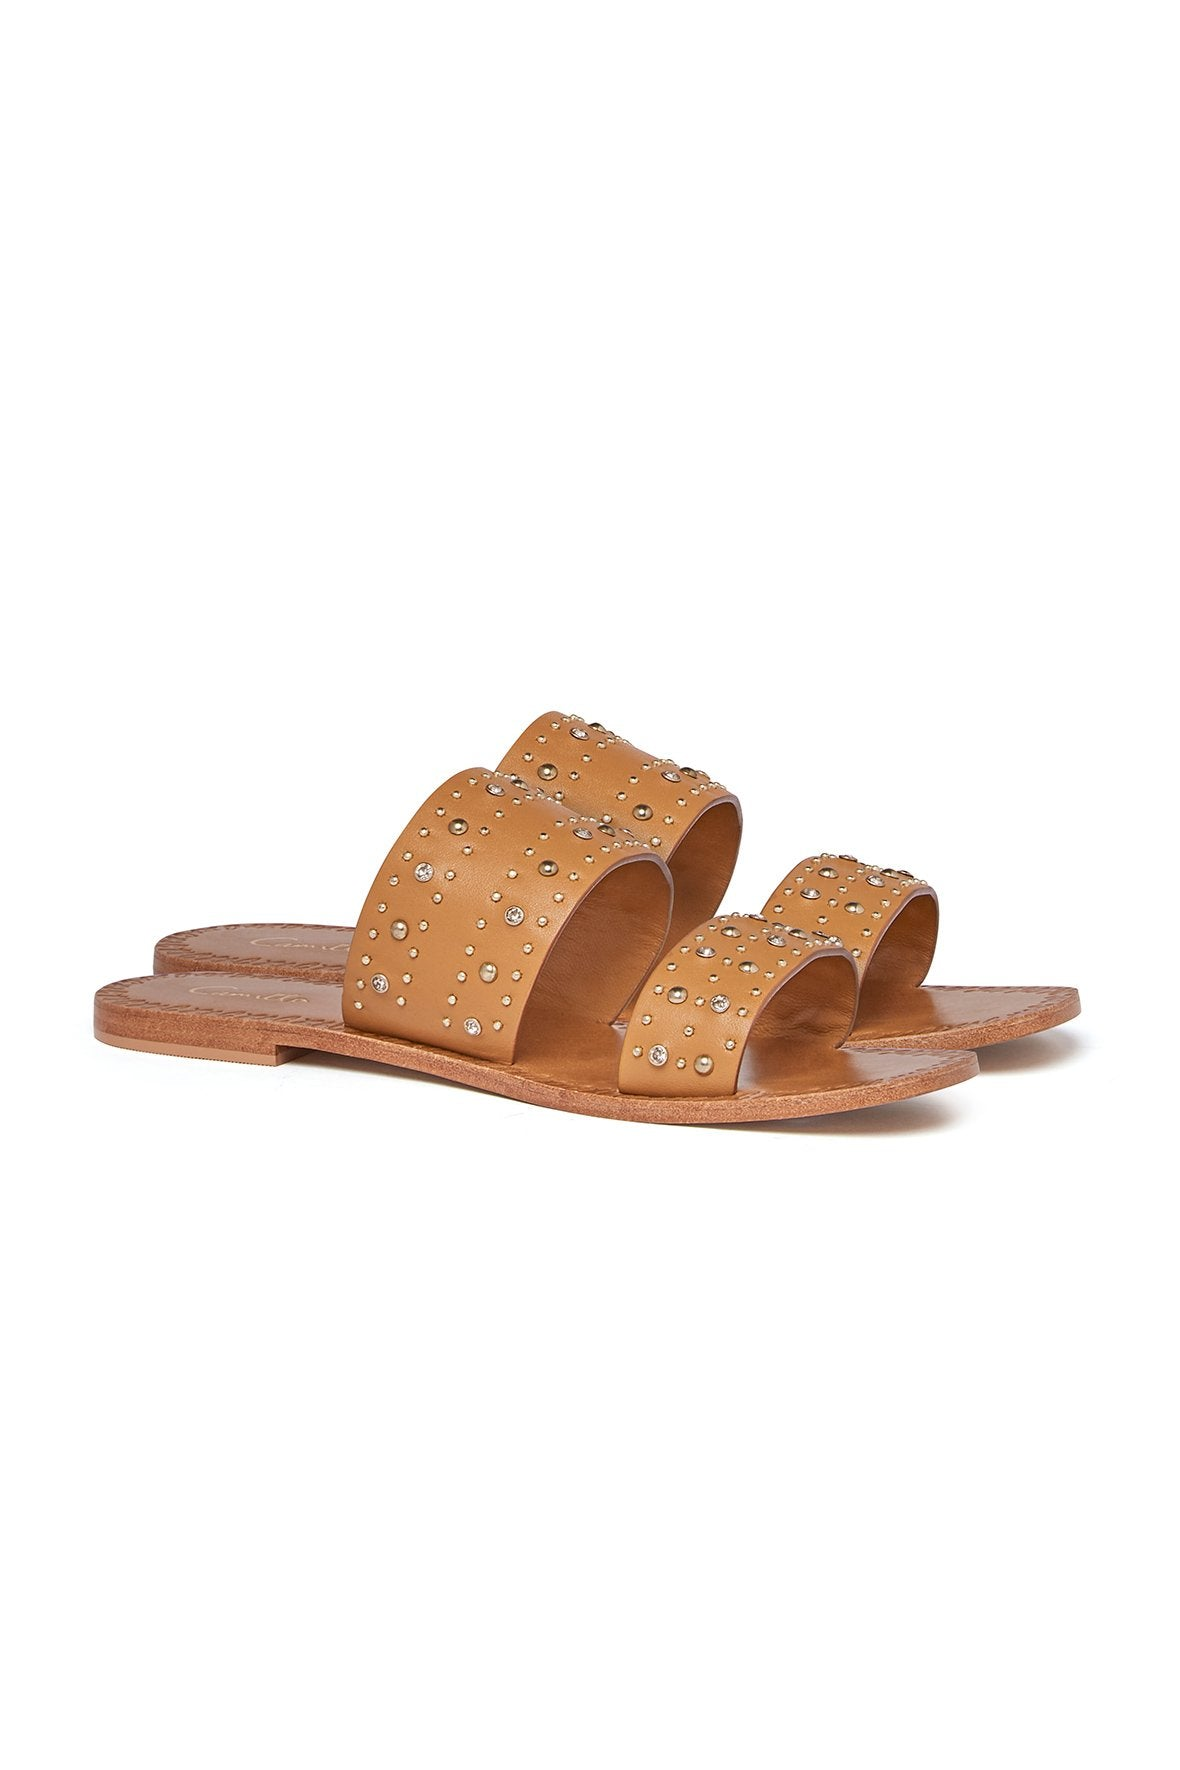 KNOTTED FOOTBED SLIDE MOTO MAIKO